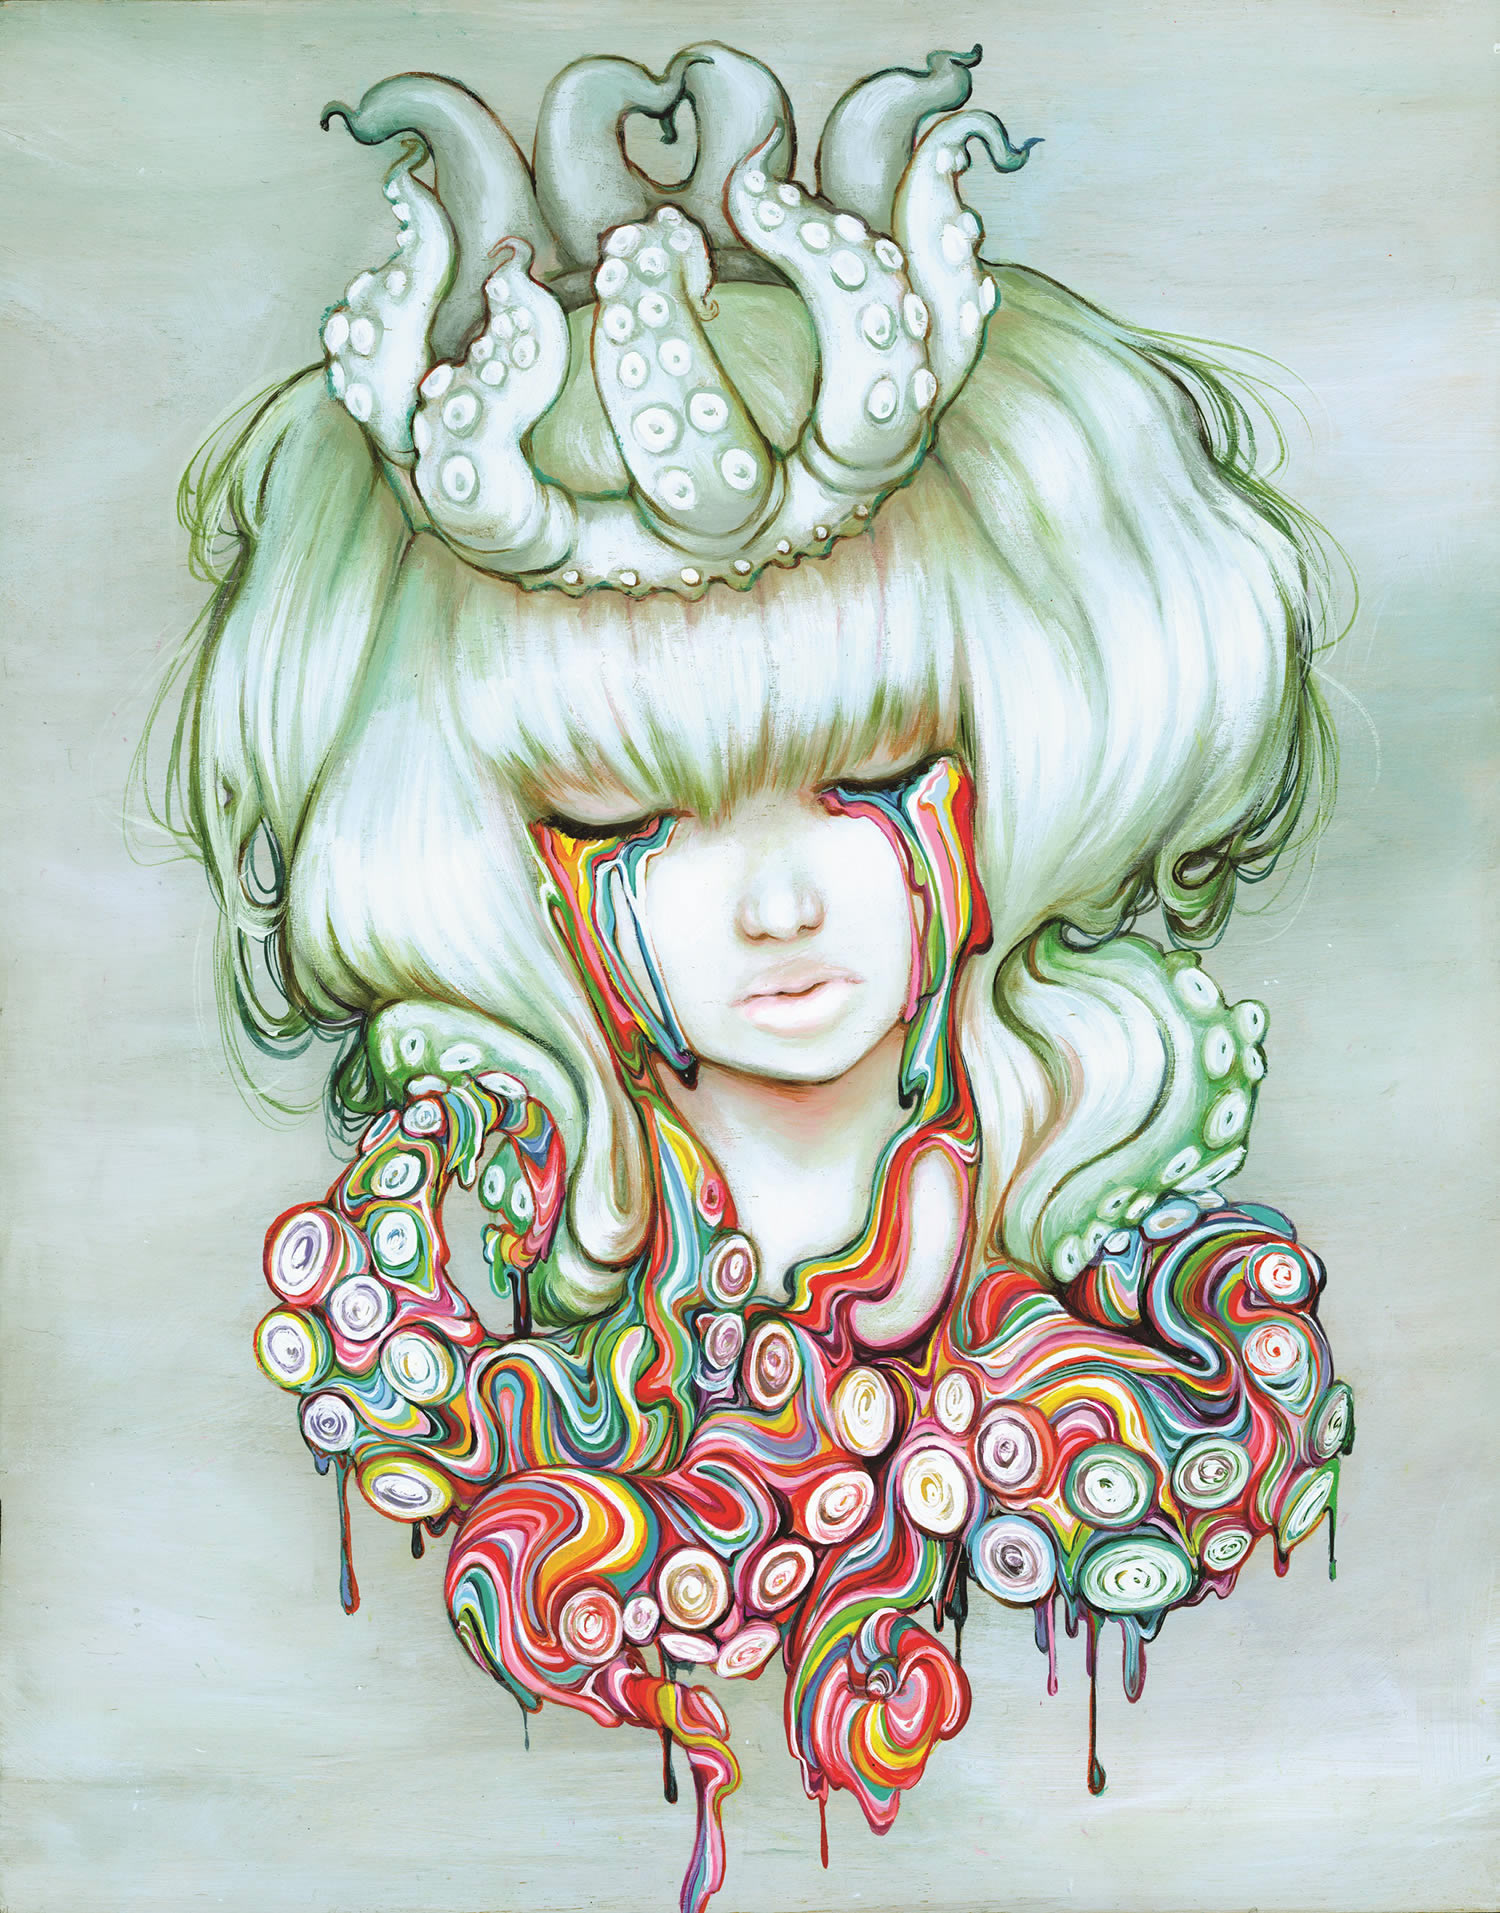 rainbow paint drips from eyes, by Camilla d'Errico